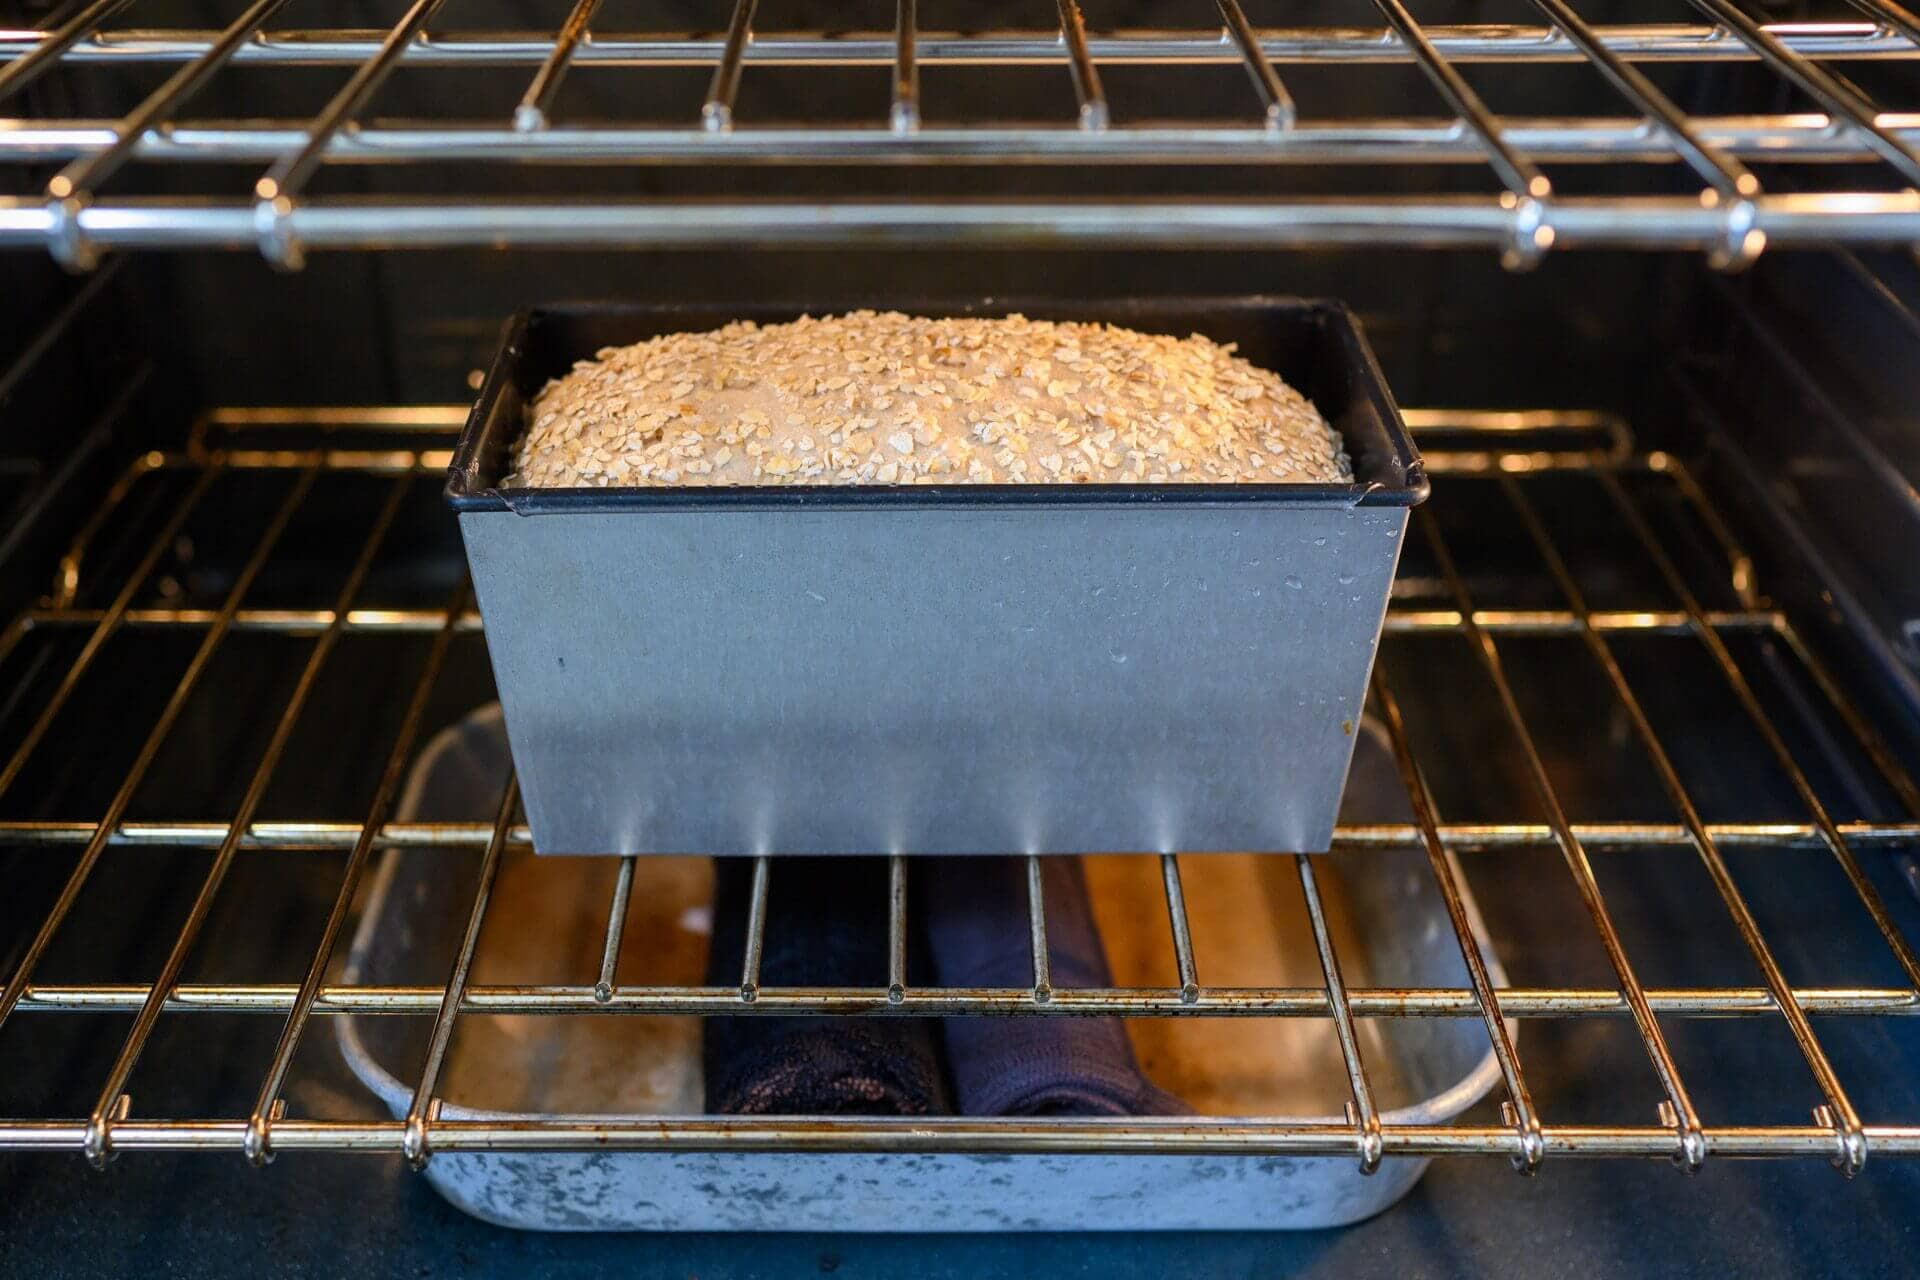 Honey whole wheat dough baking in oven with steam